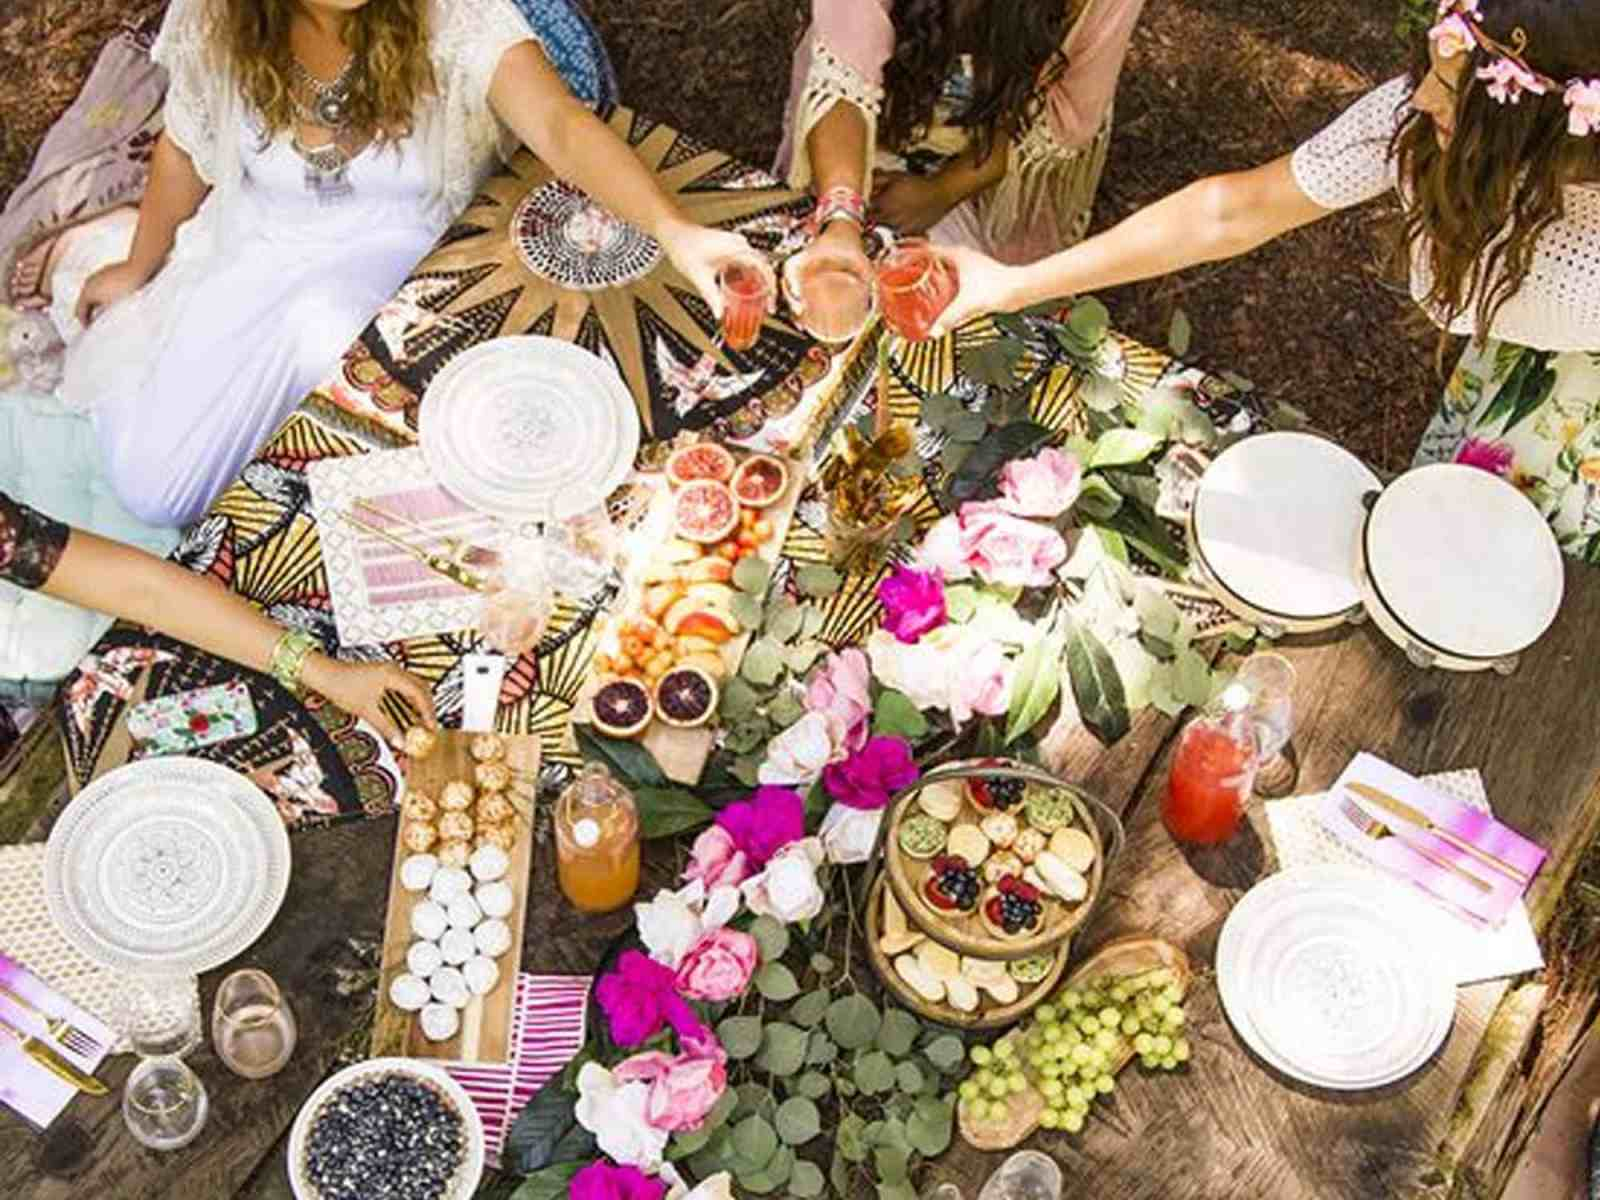 Need some summer party inspo? Here are some garden party ideas for your next get together. Just grab your friends, and some good food!